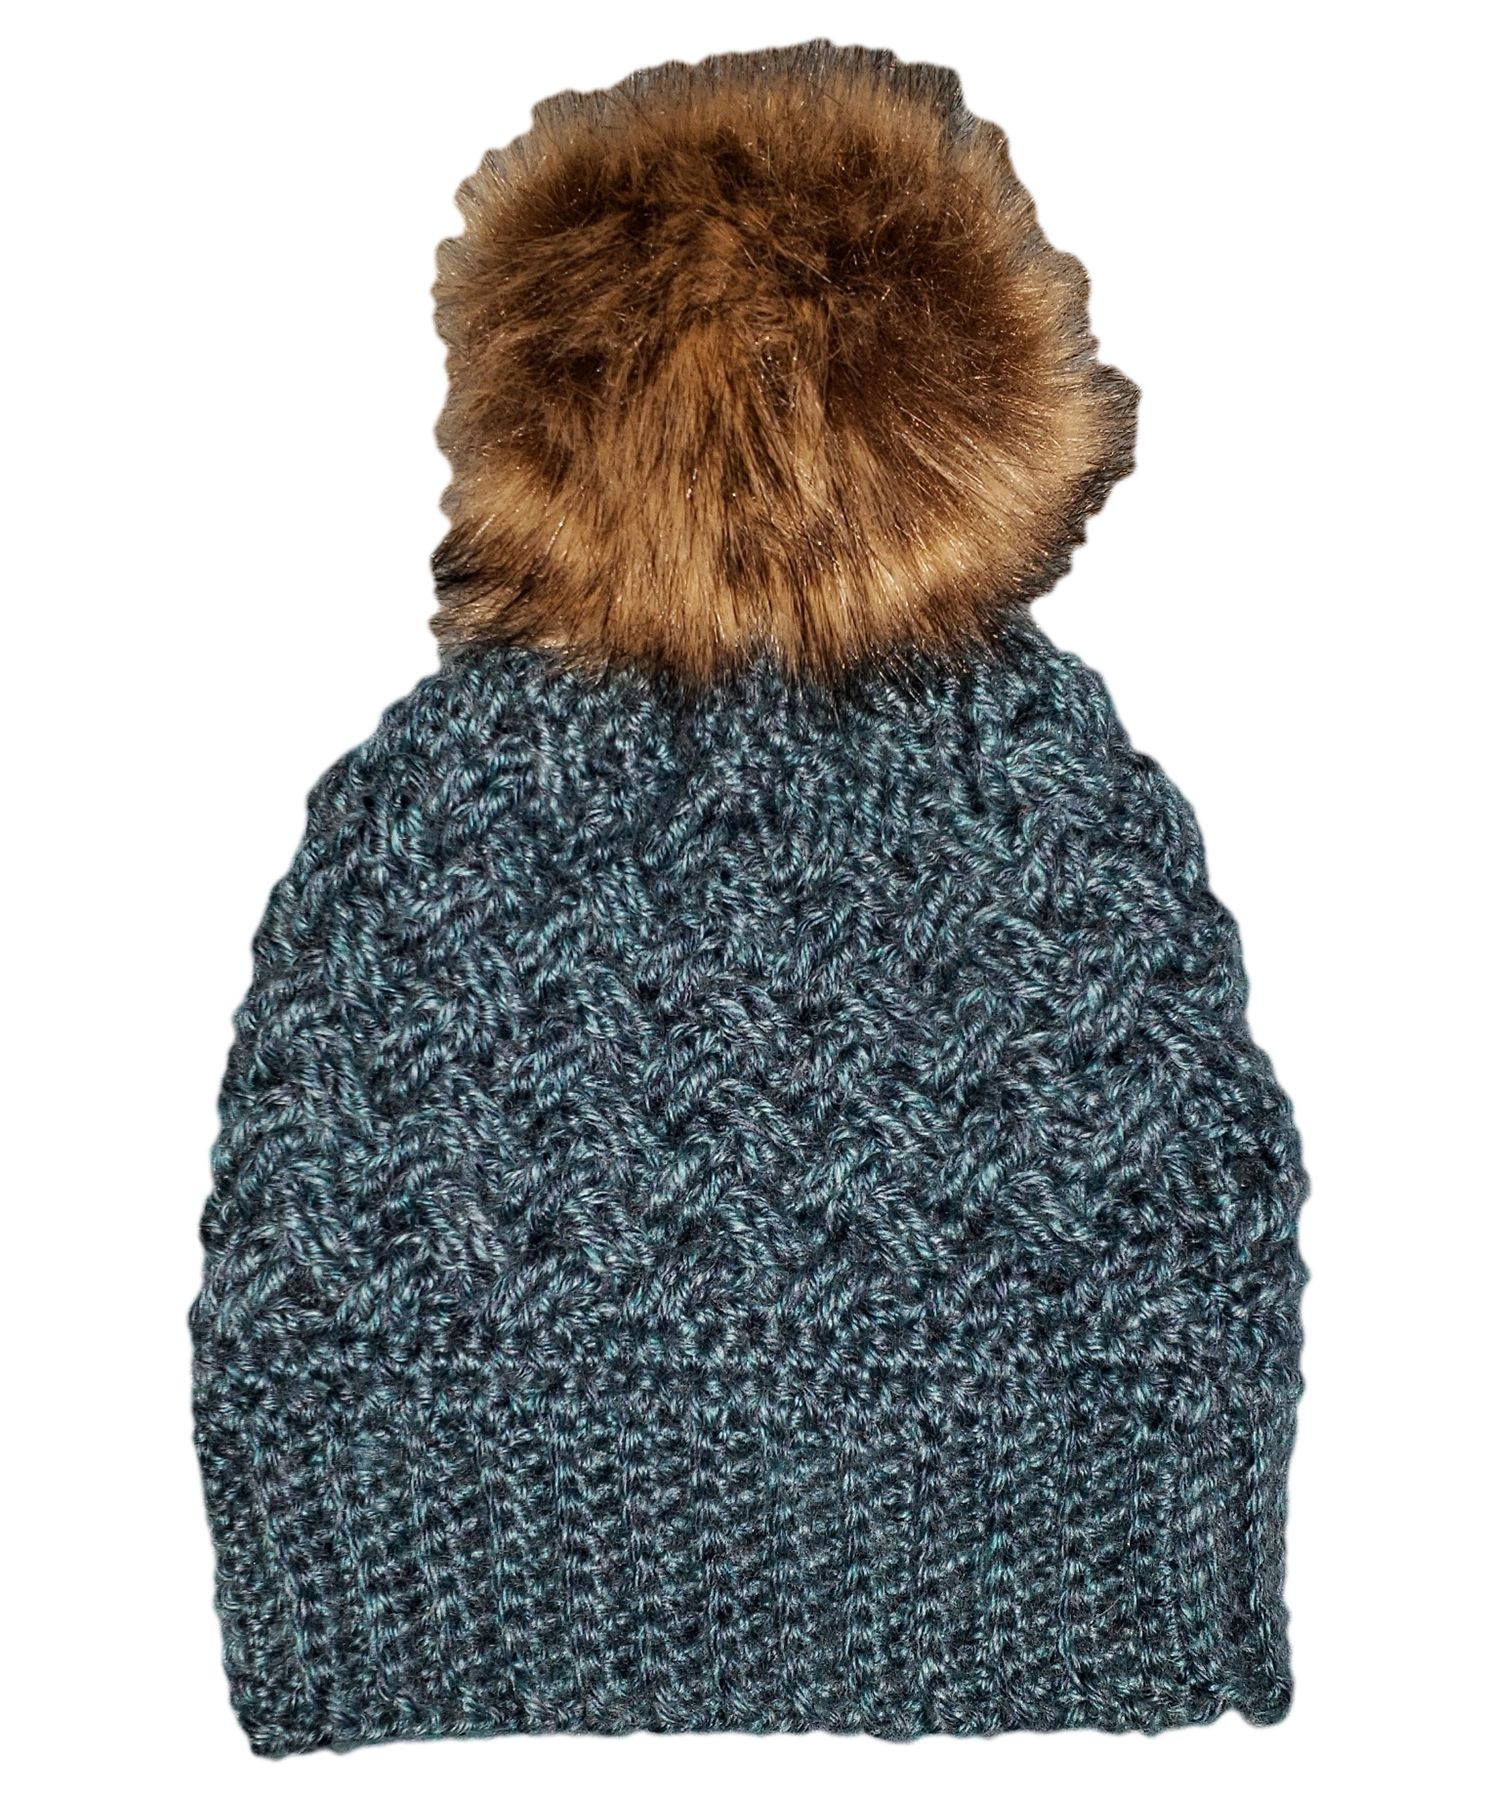 8dfabf14f58 Who doesn t love an oversized faux fur pom  Your new favorite hat is